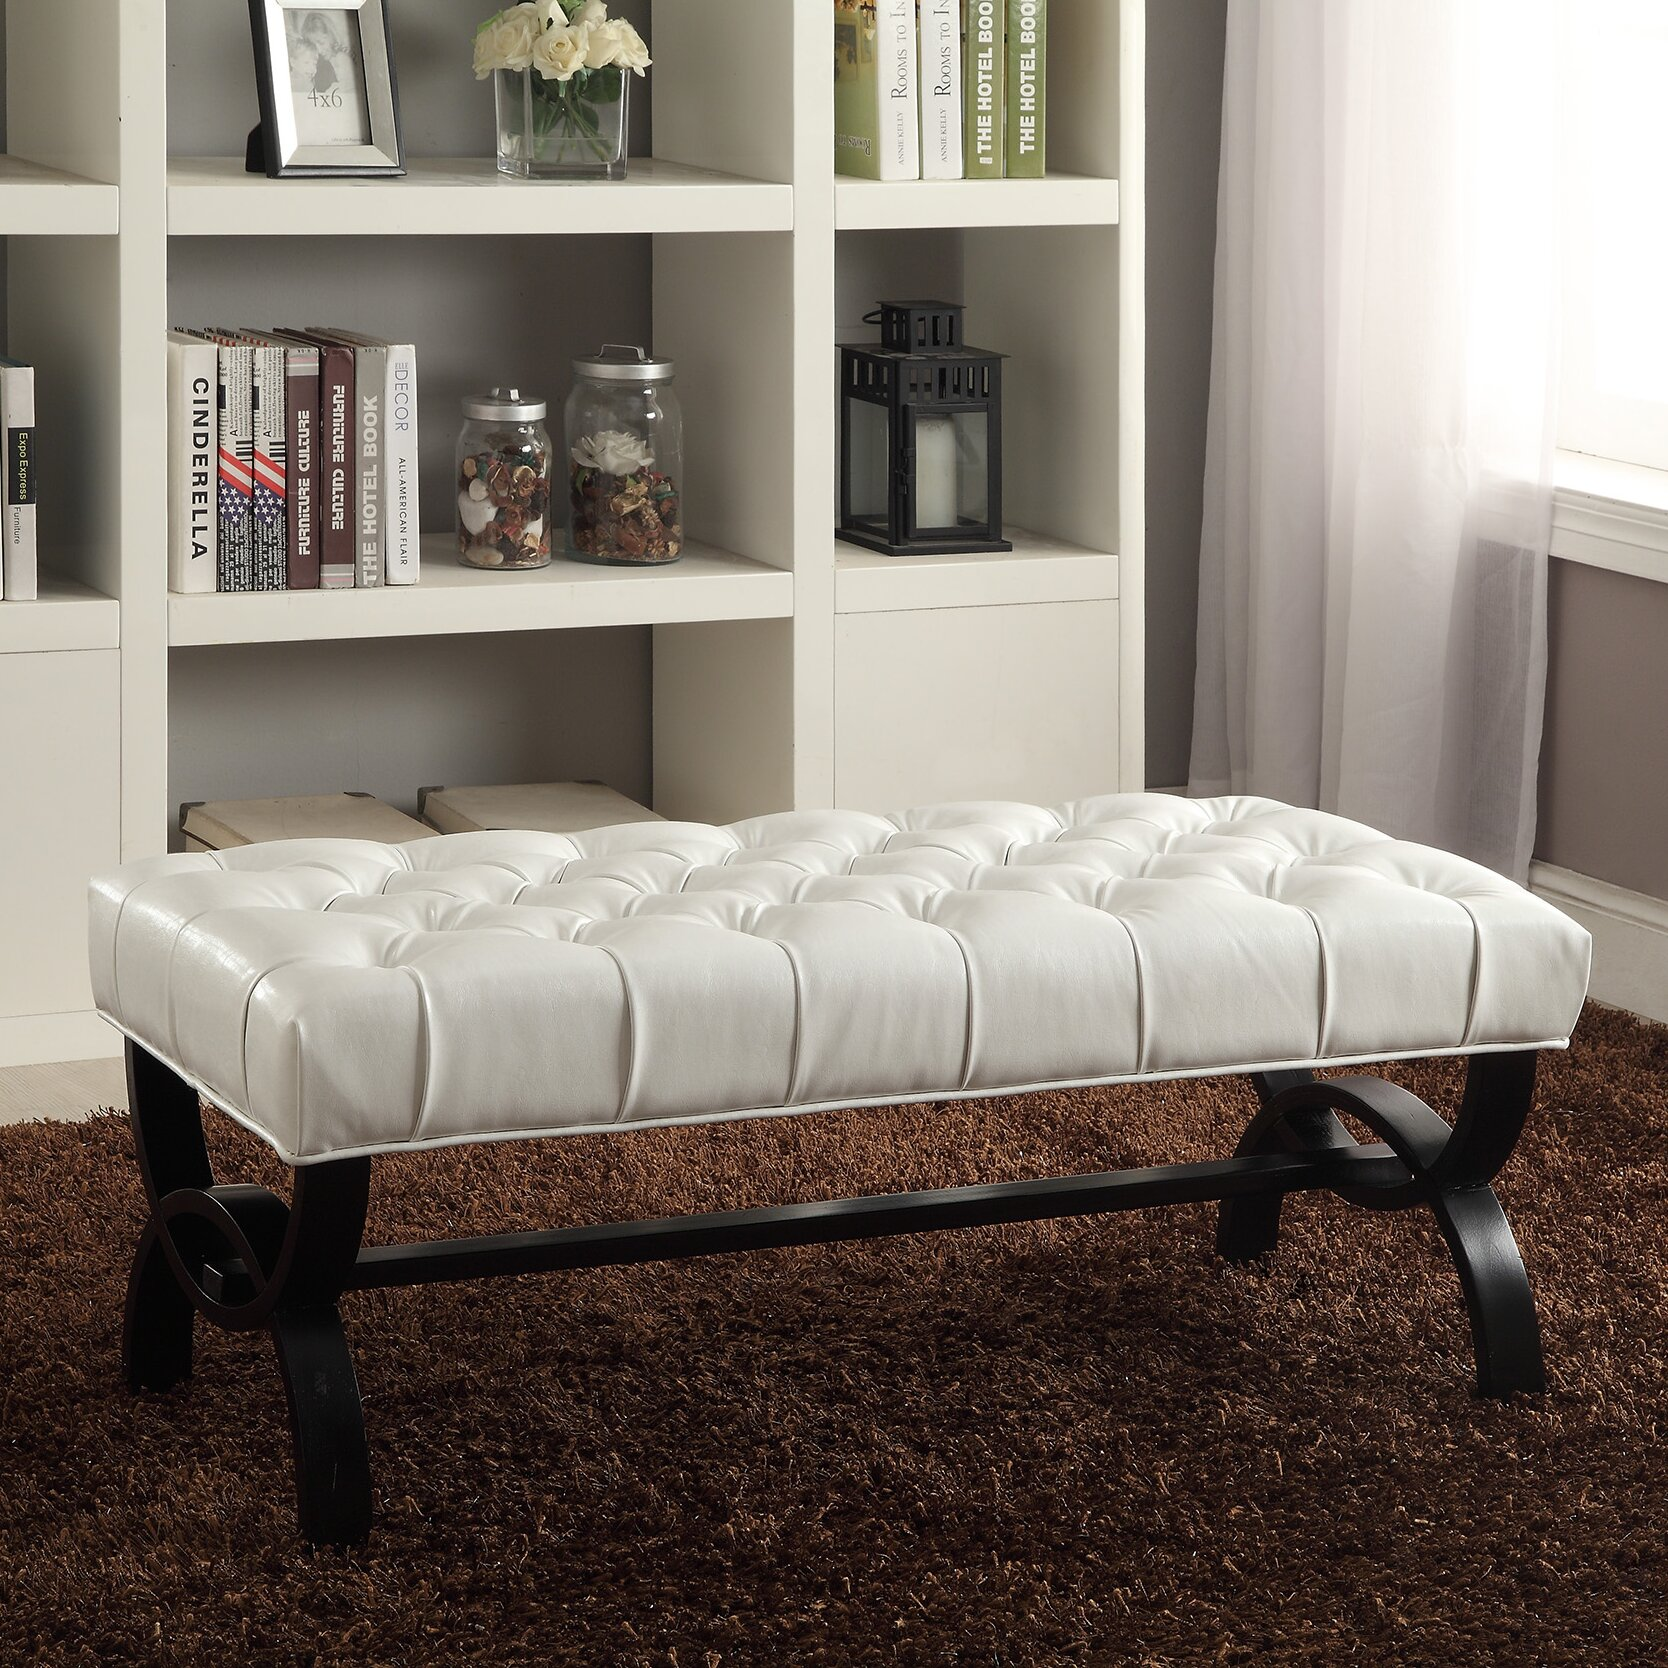 wholesale interiors baxton studio upholstered bedroom bench reviews wayfair. Black Bedroom Furniture Sets. Home Design Ideas